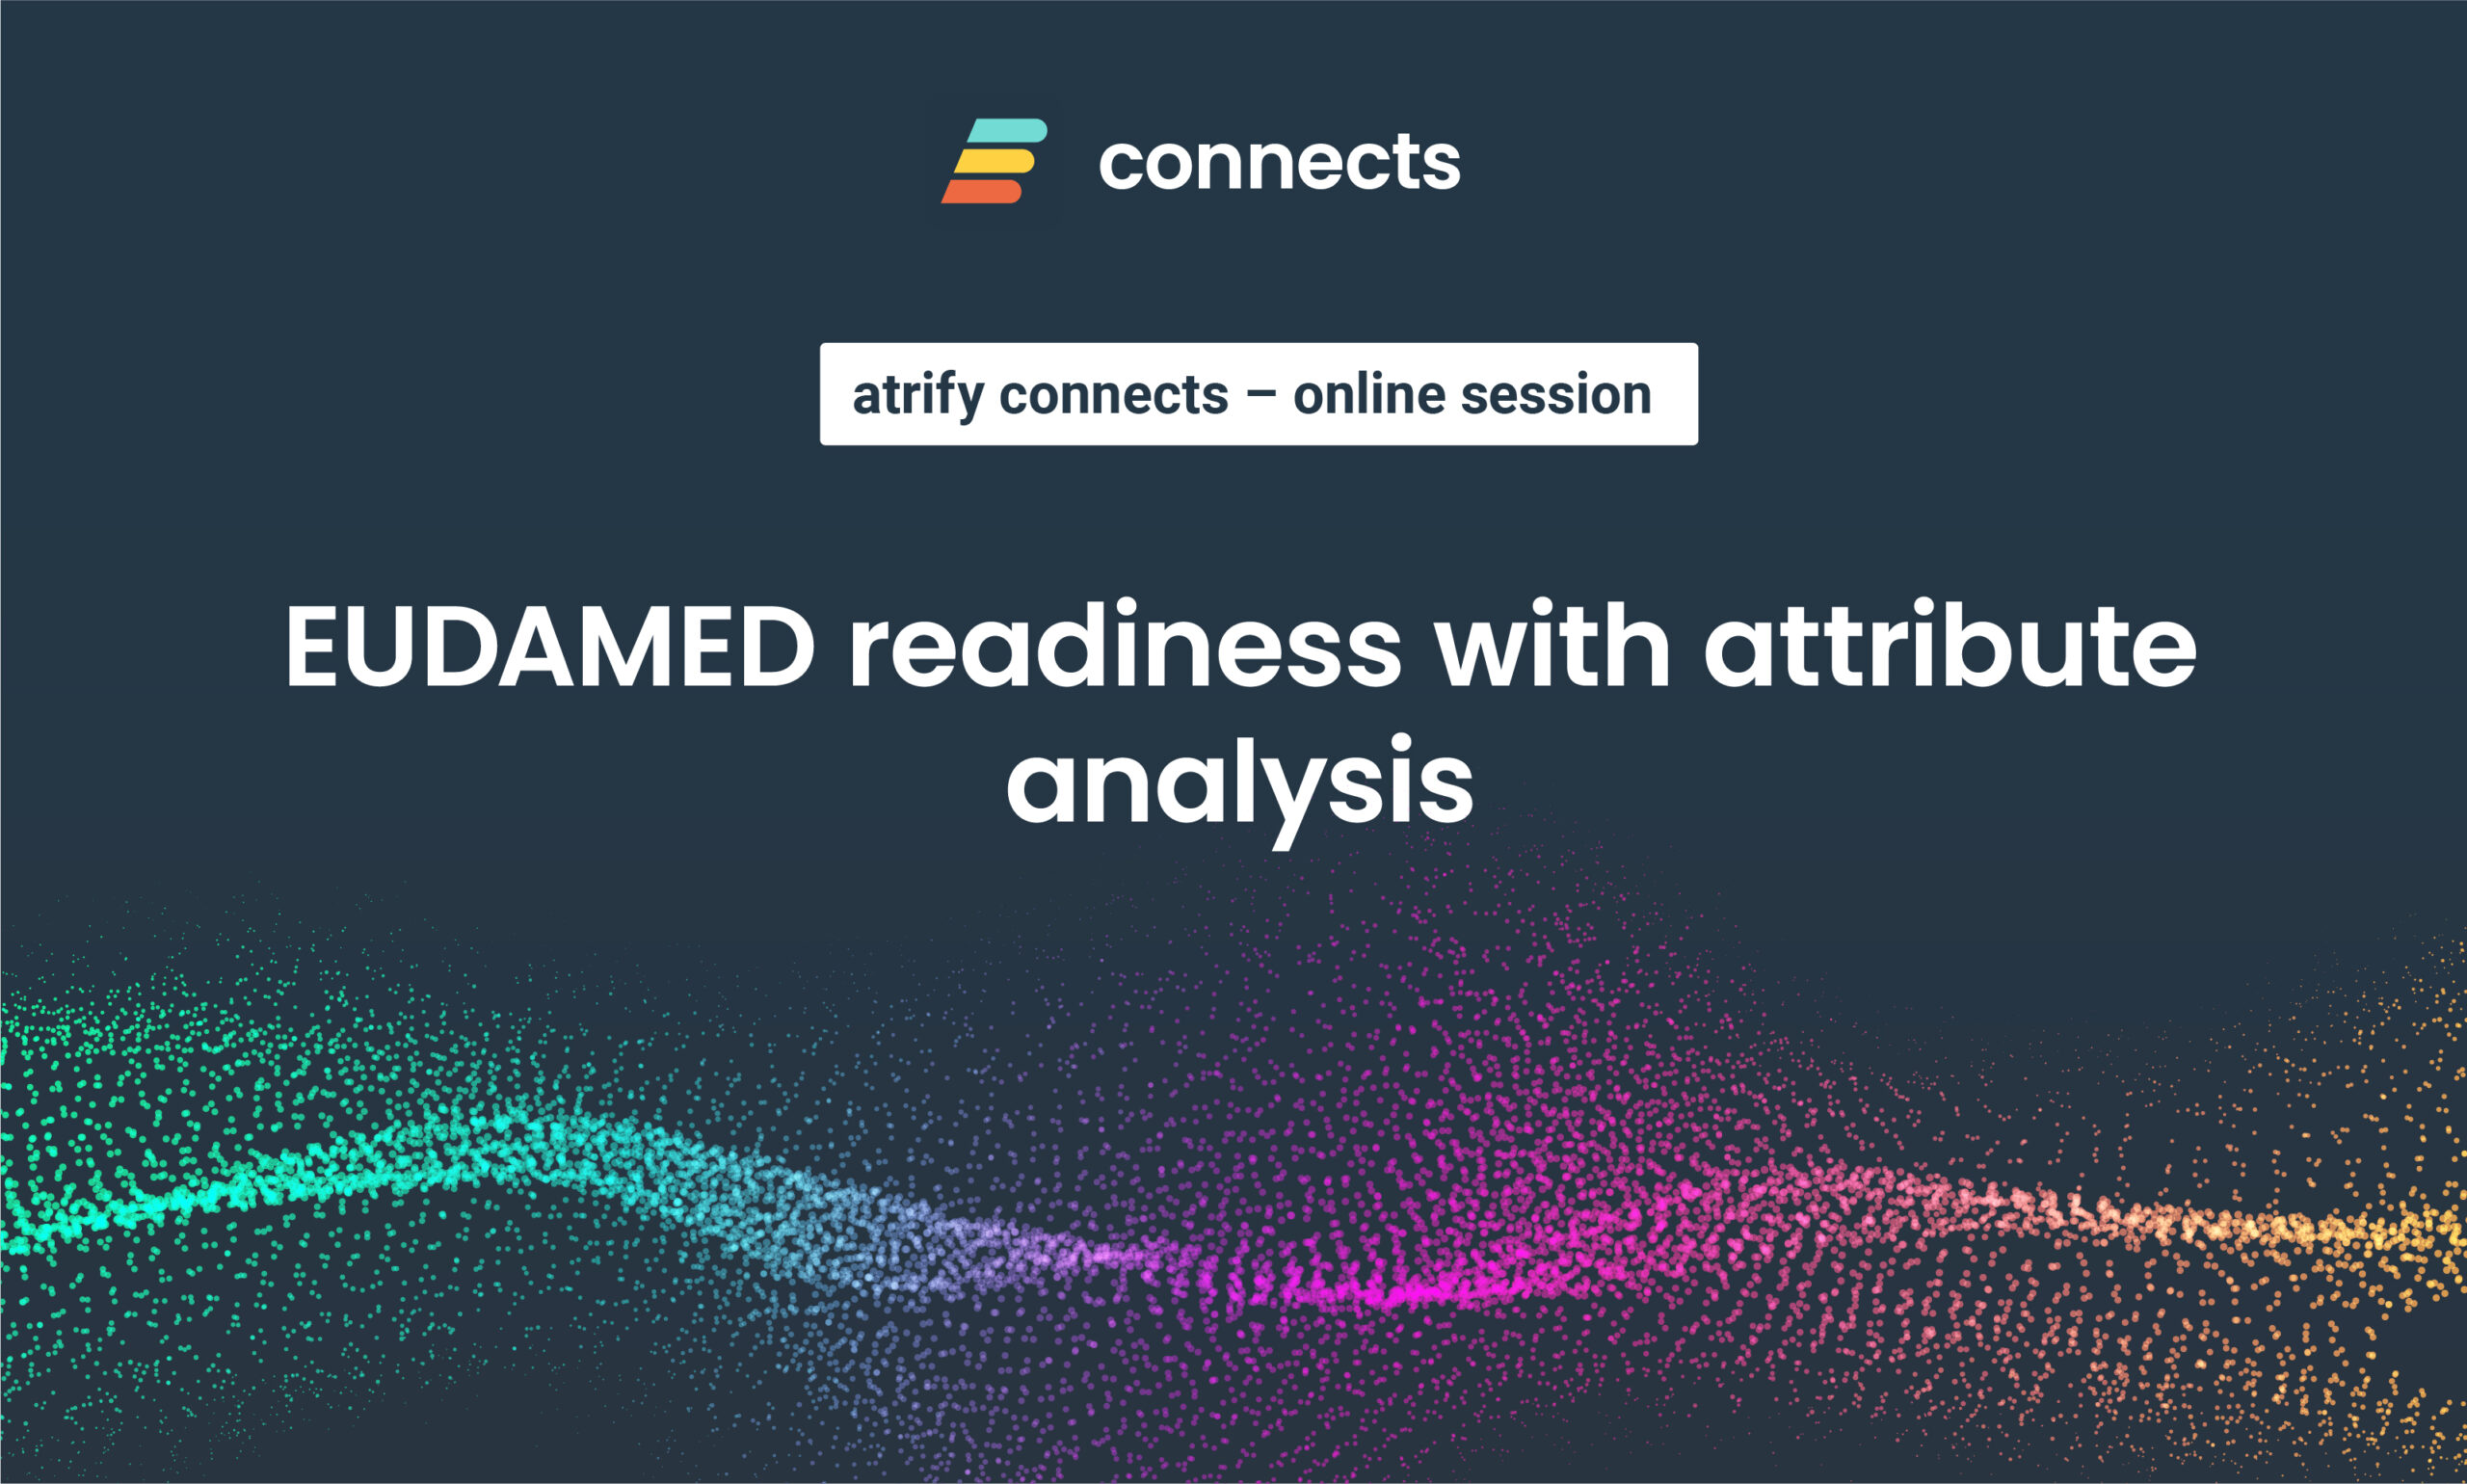 EUDAMED readiness - atrify connects